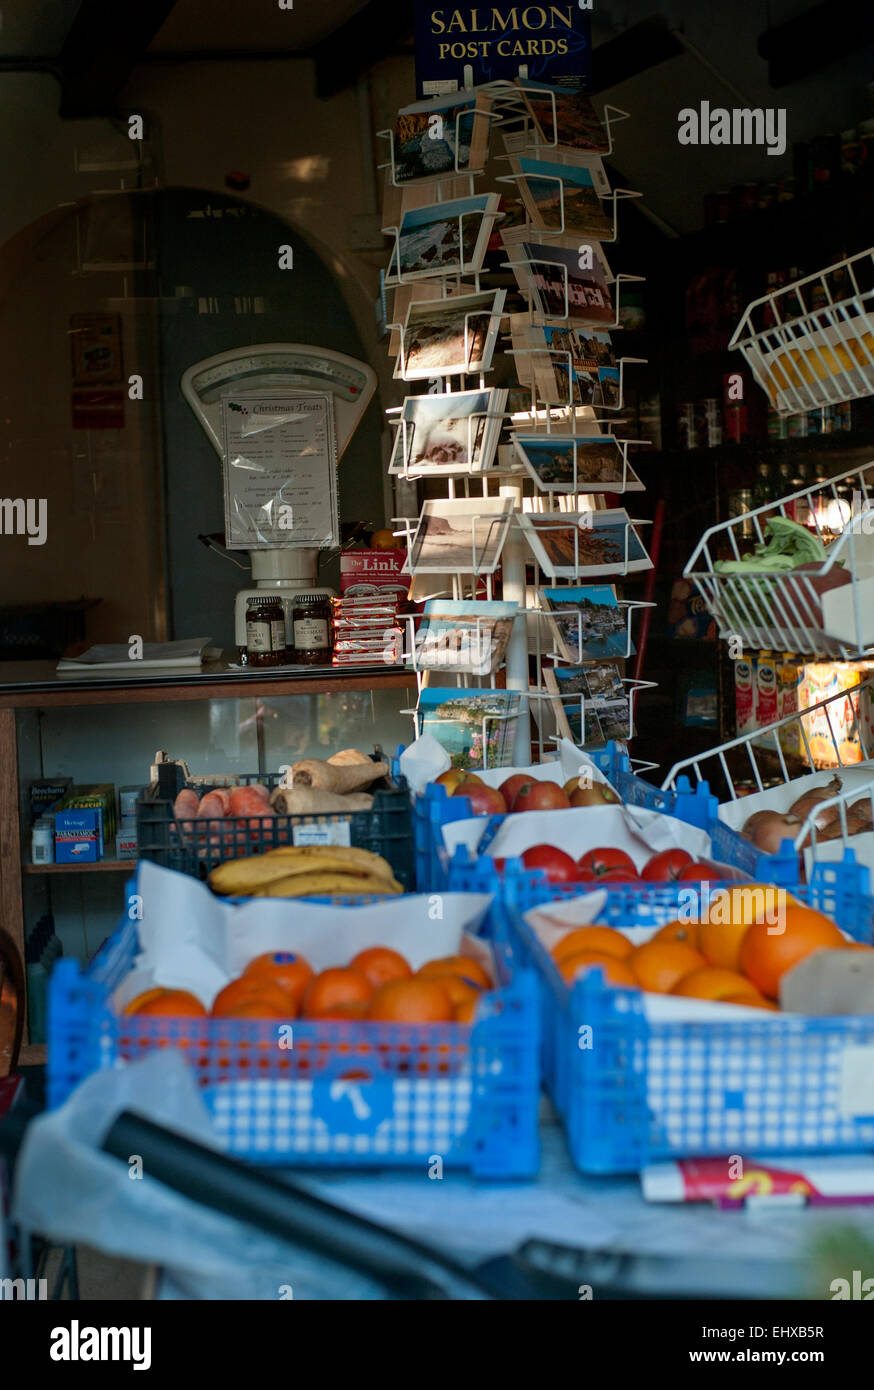 Small shop postcard carousel with weighing machine and fruit and veg in foreground - Stock Image